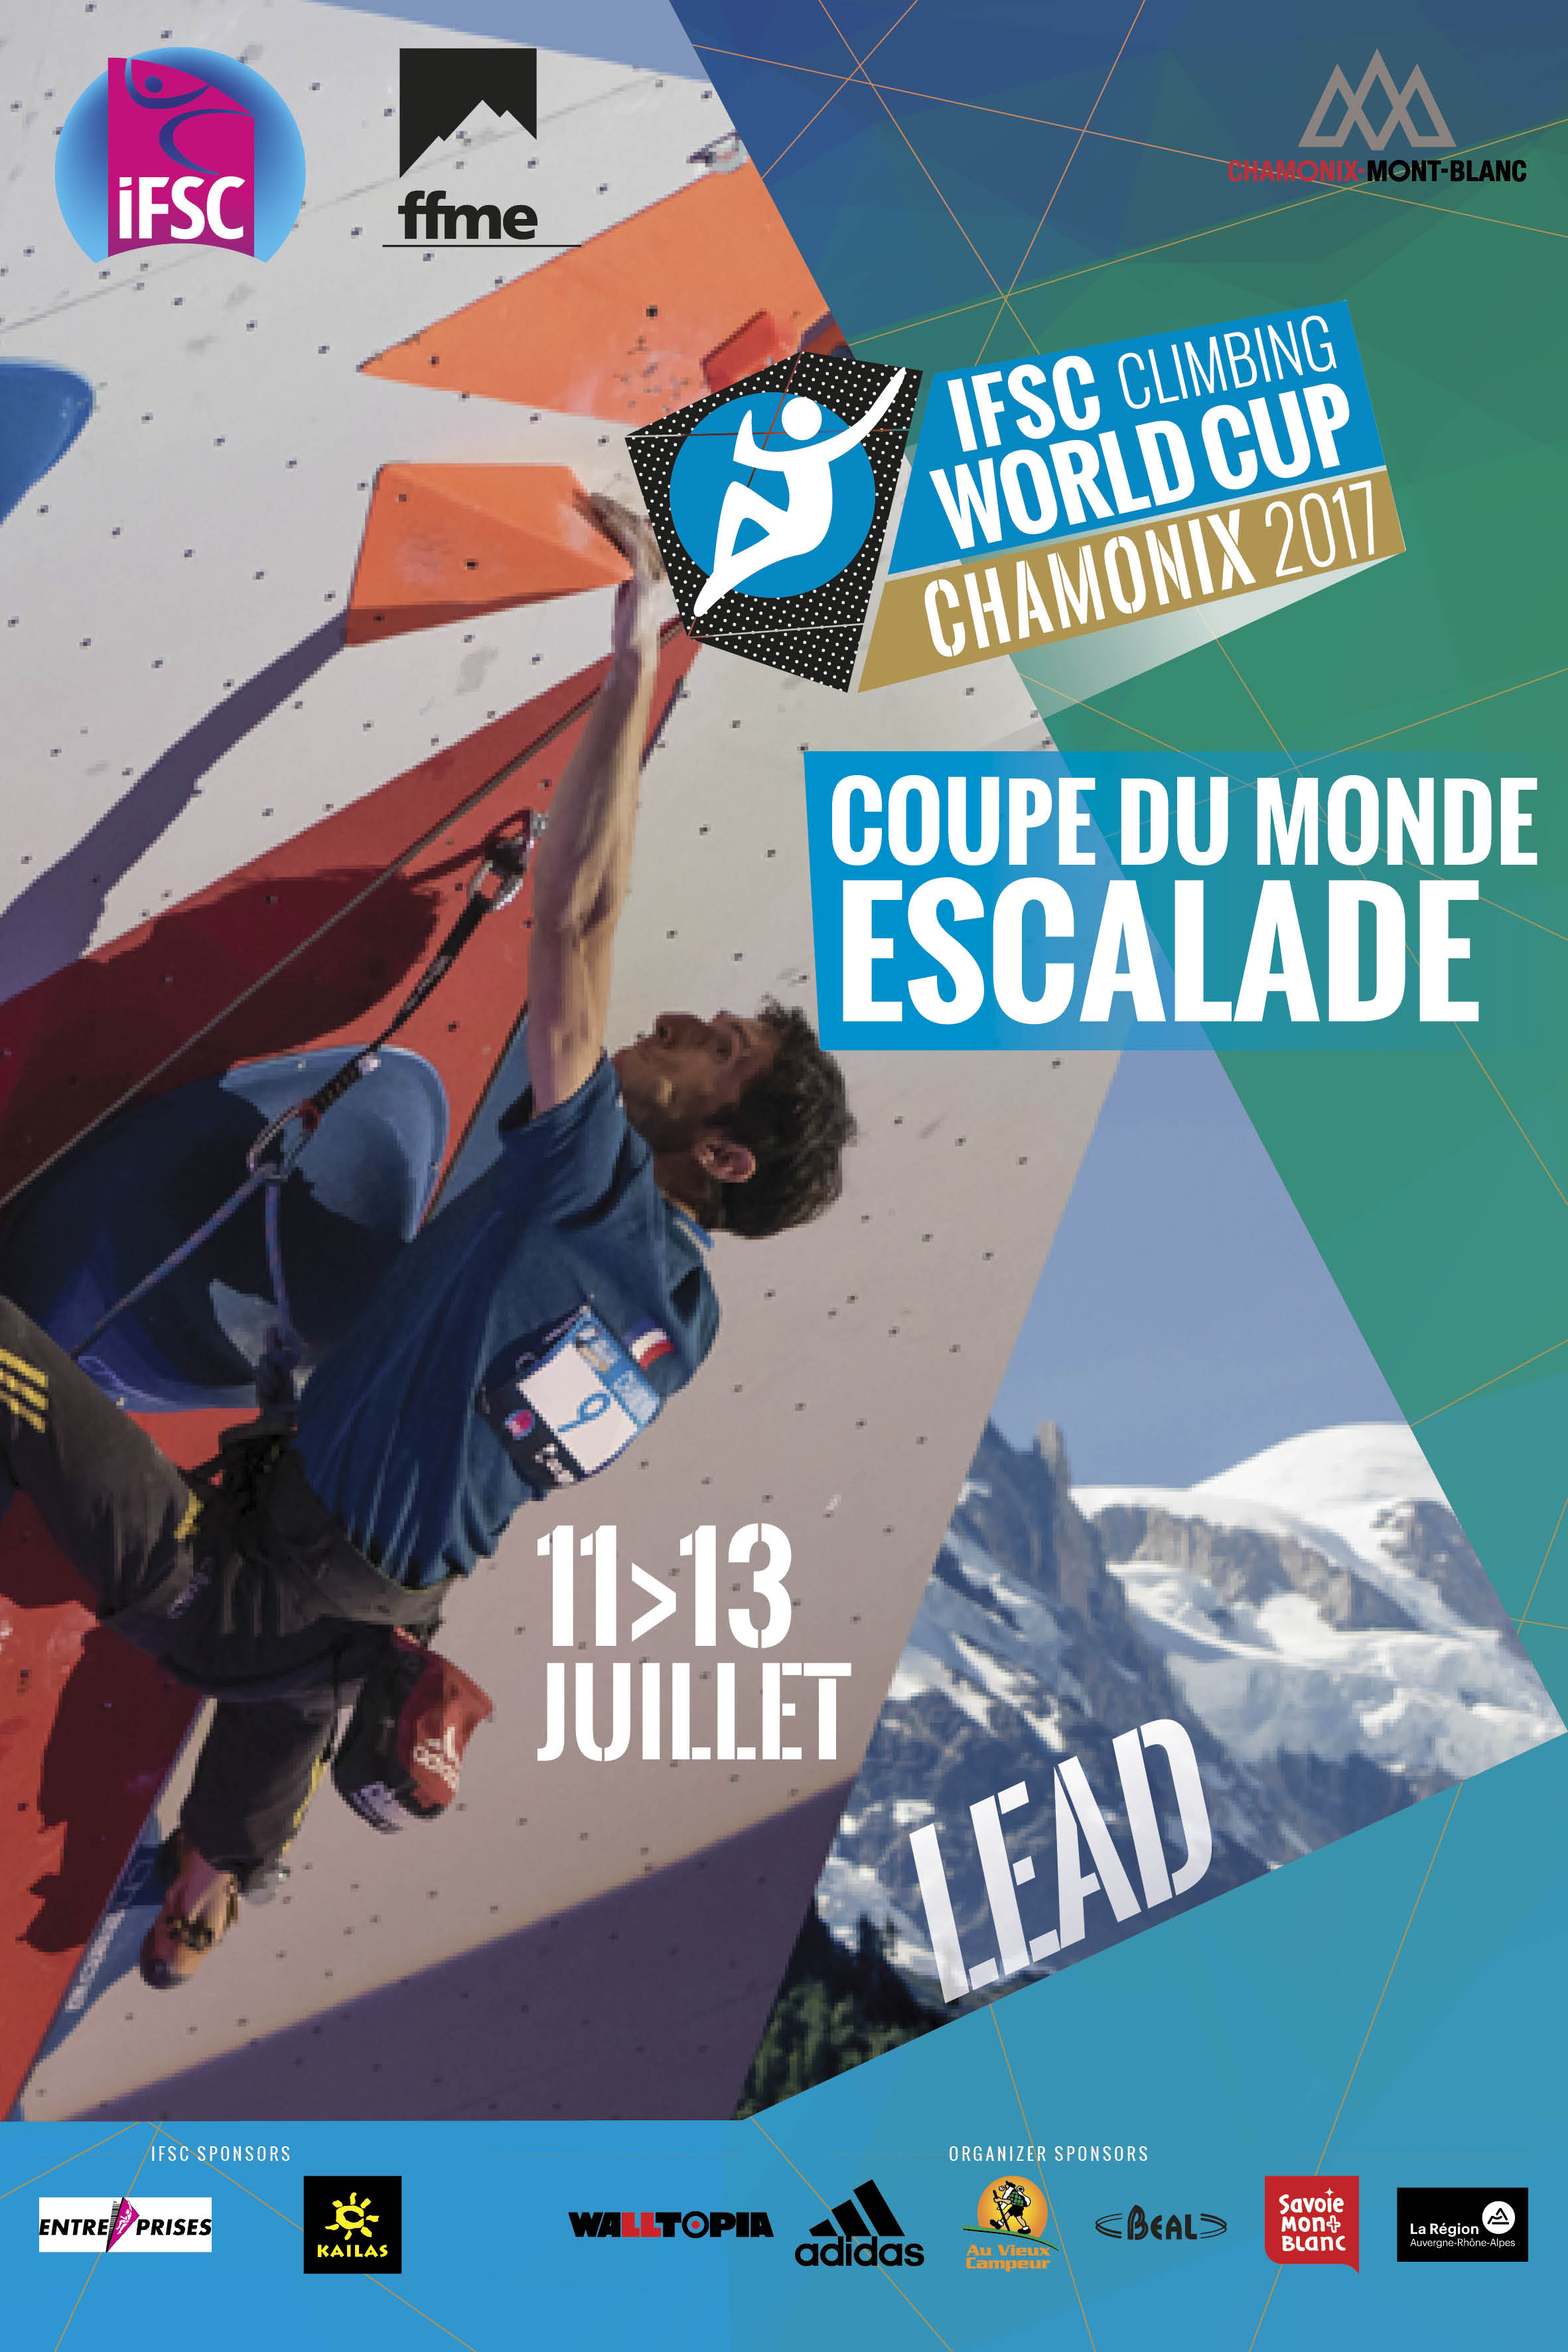 2017 World Cup Climbing program